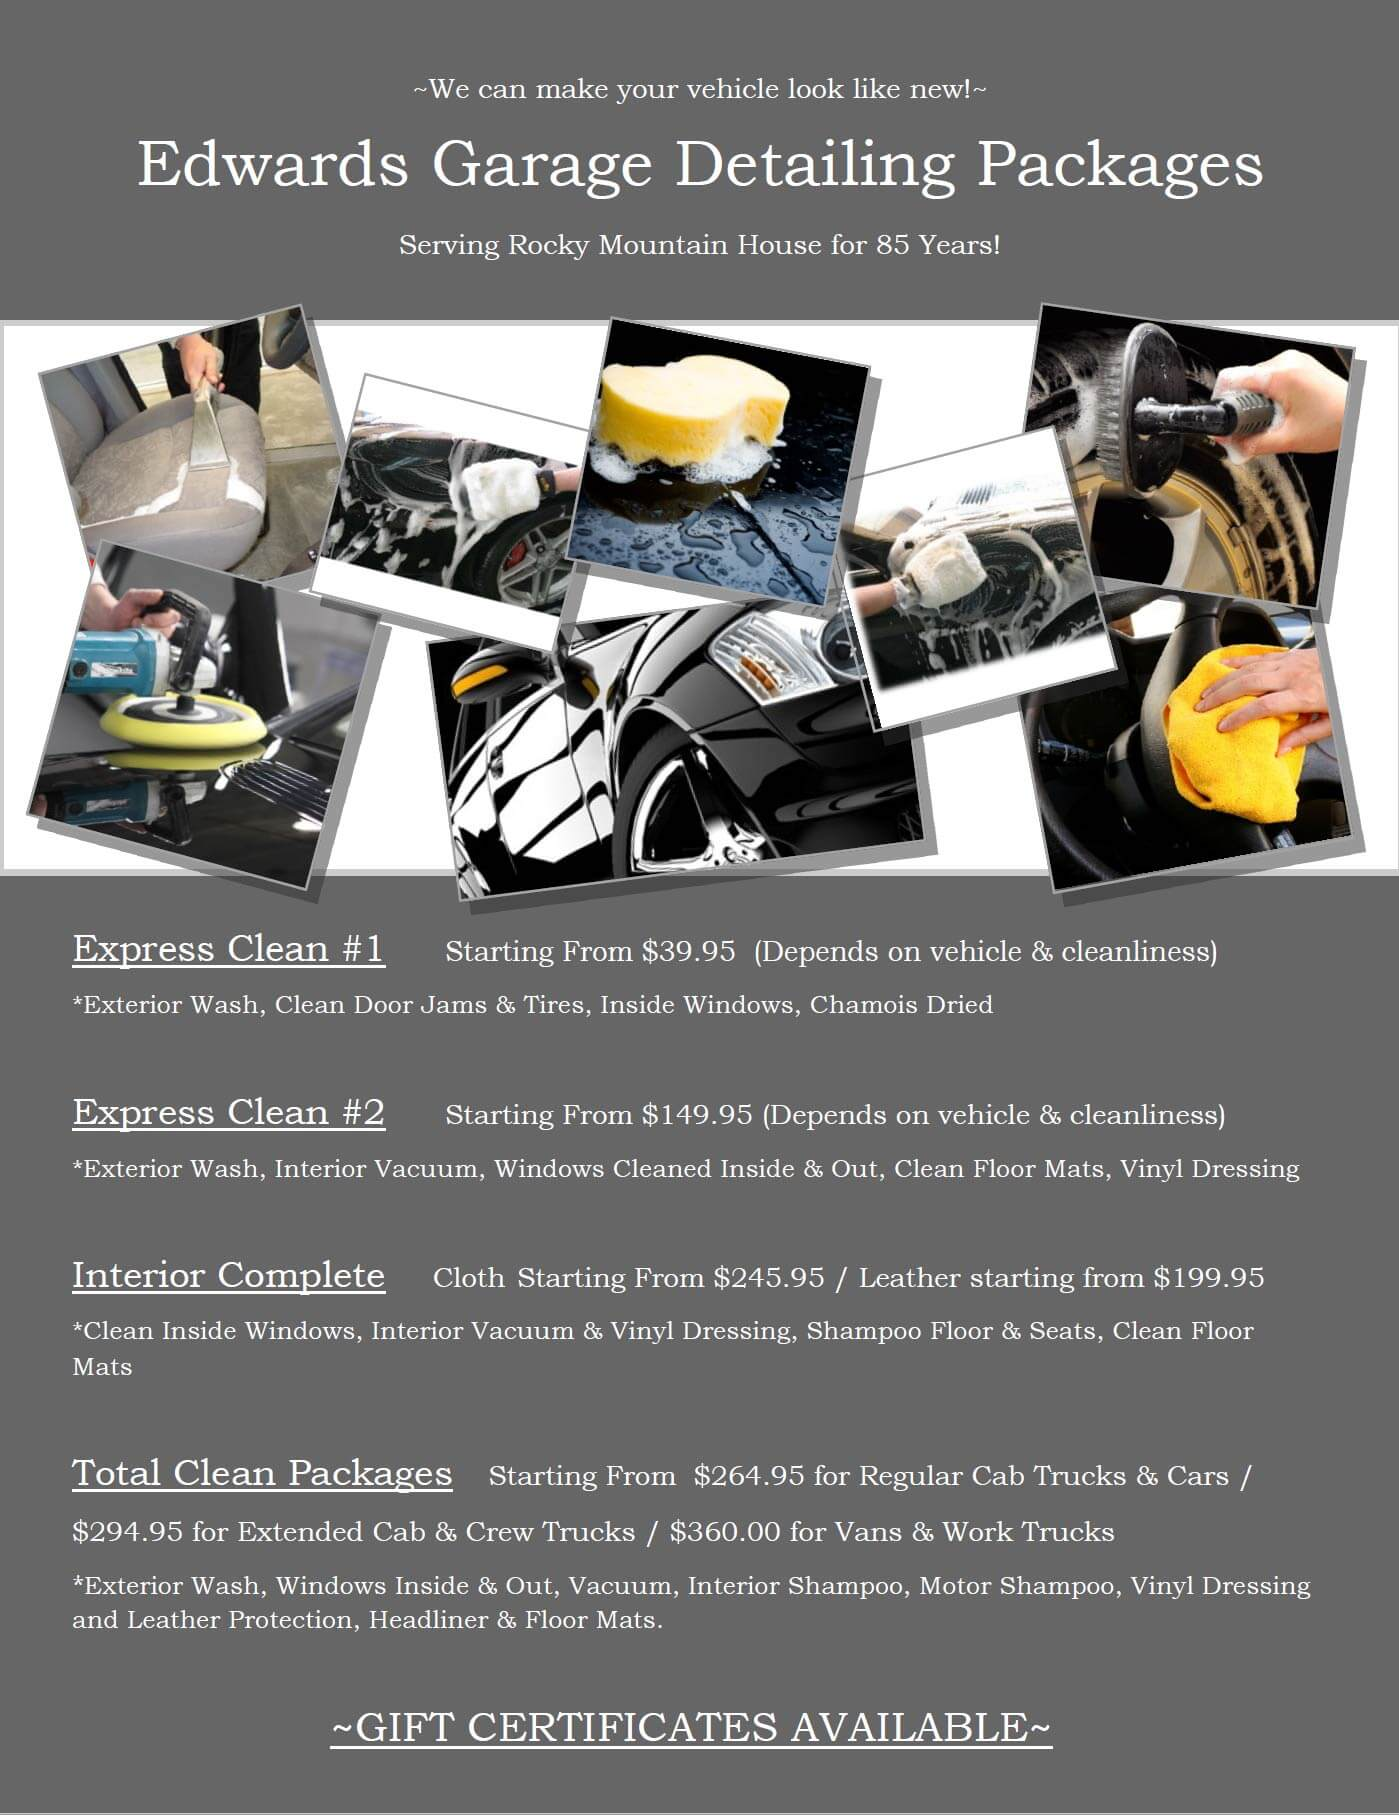 Edwards Garage Detailing Packages Additional Service